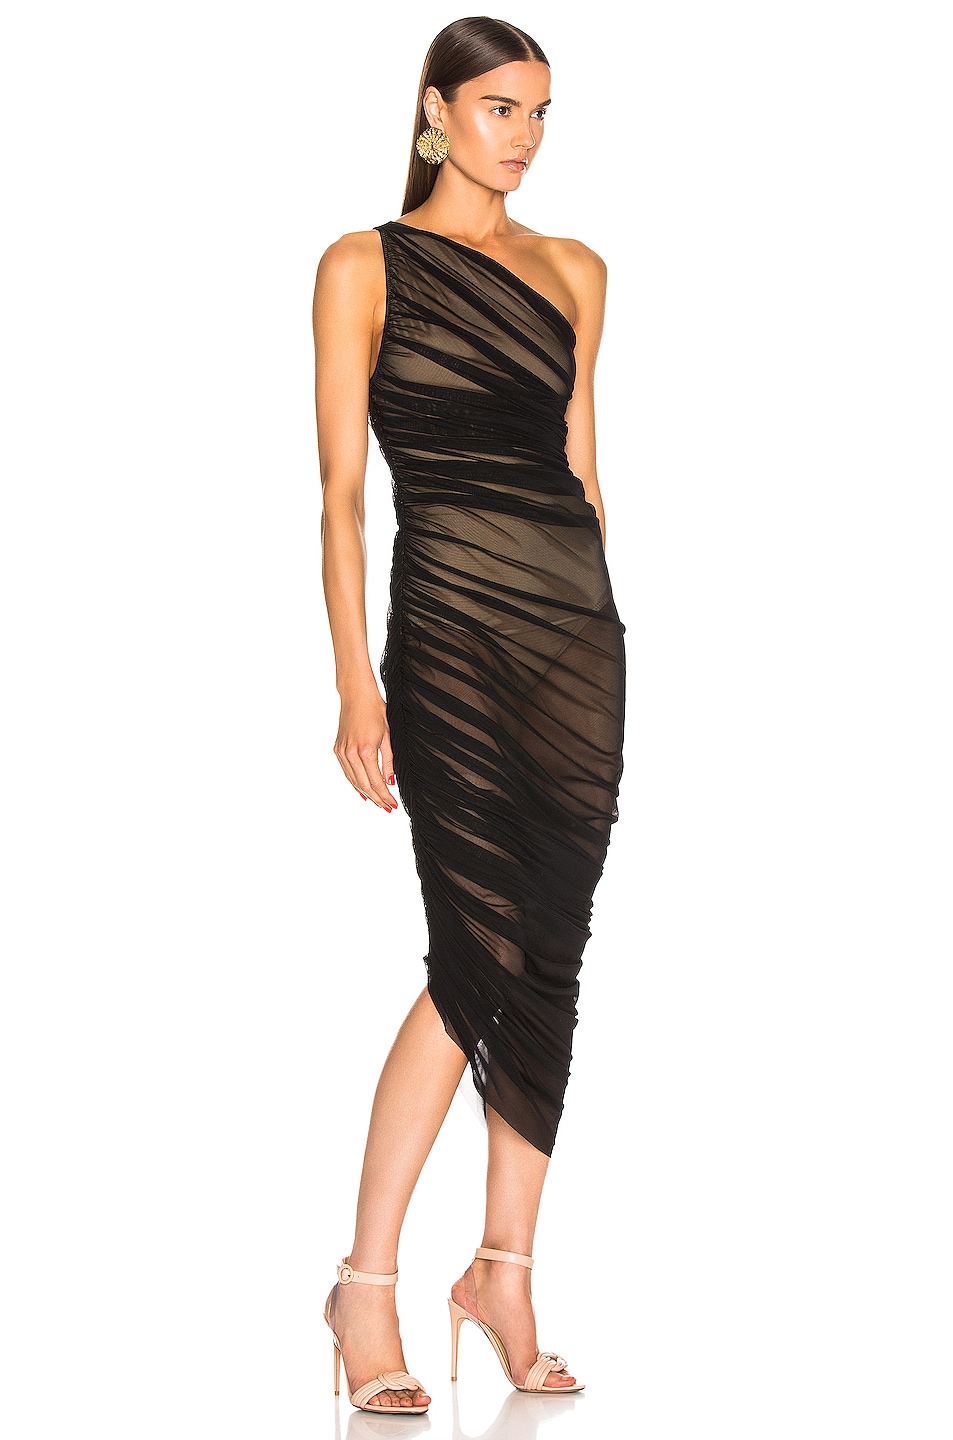 Norma Kamali Accessories Diana Gown